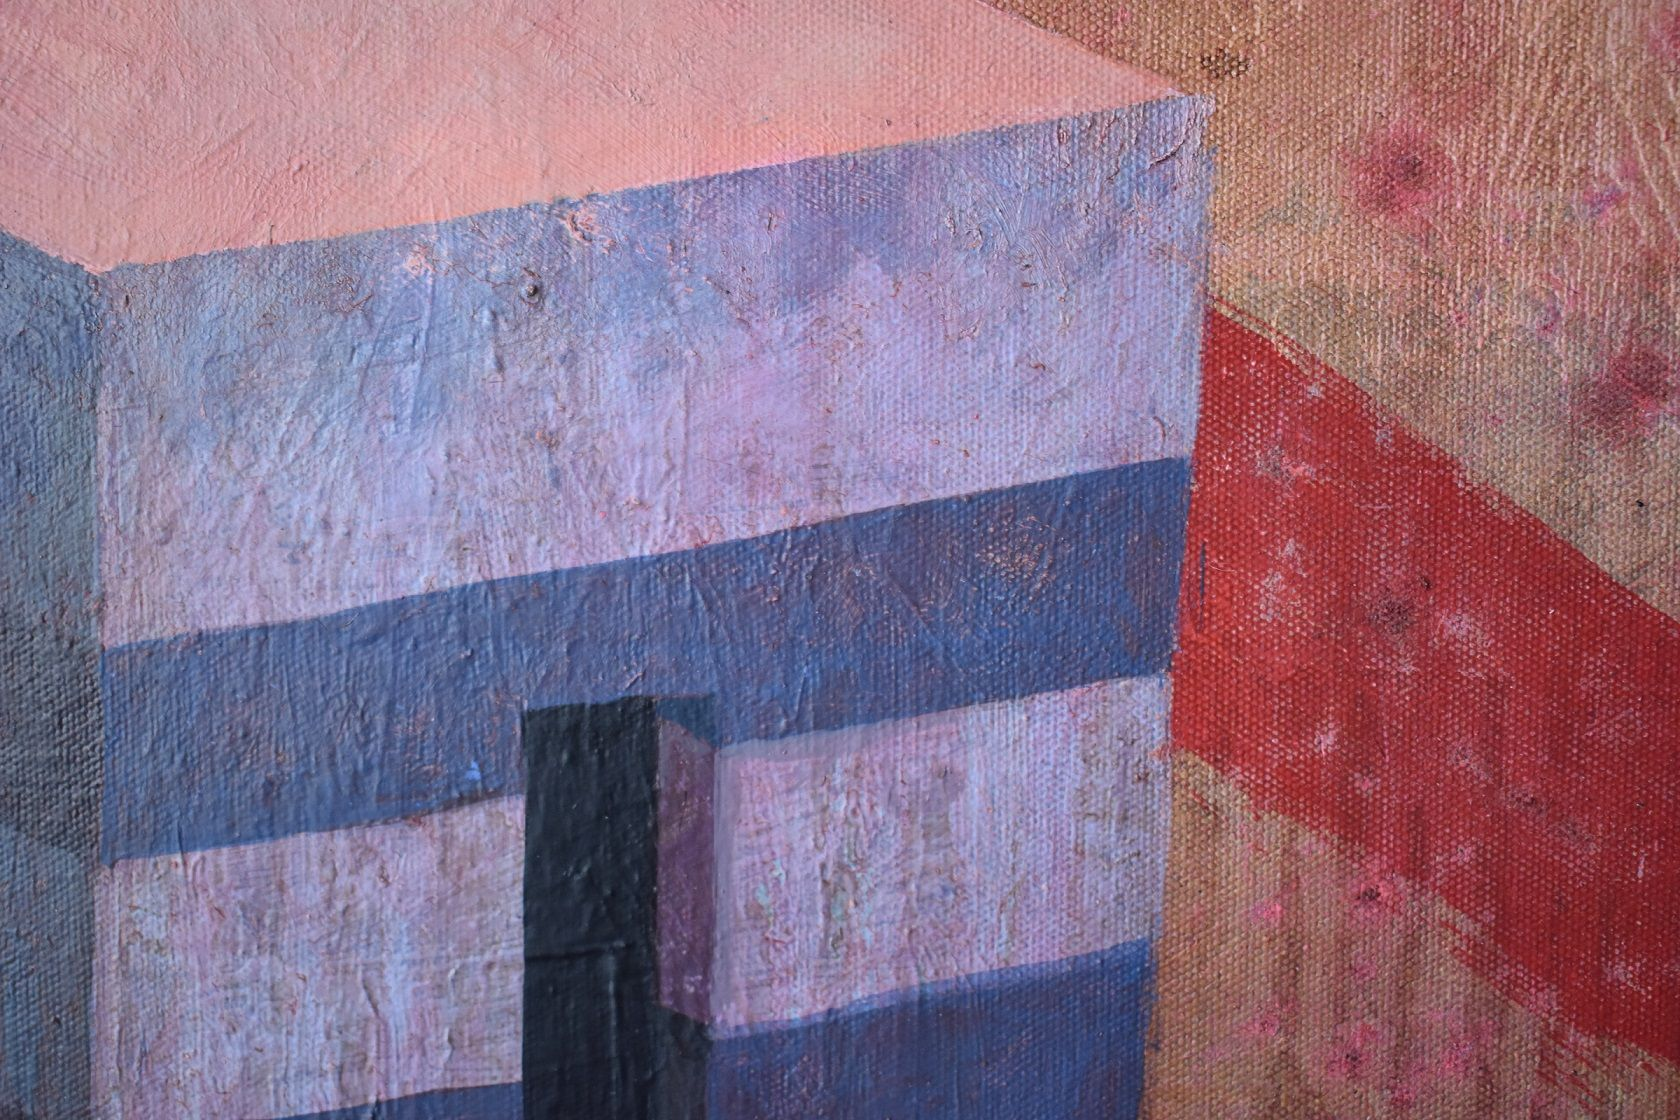 RUV,Ramon Enrich,Peinture contemporaine, detail 2